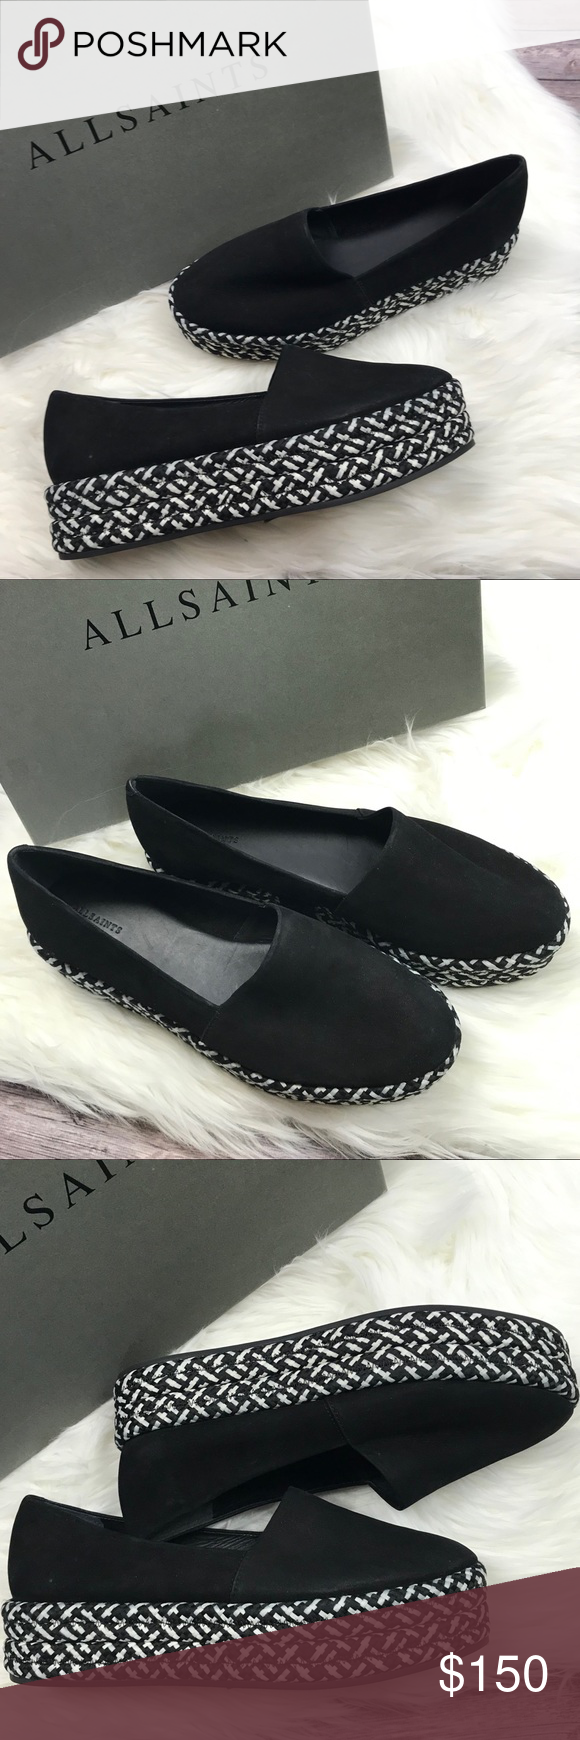 68cad683deae Allsaints Bora Platform Loafers 41 Black New in Box Allsaints Bota Platform  Loafers. Size 41